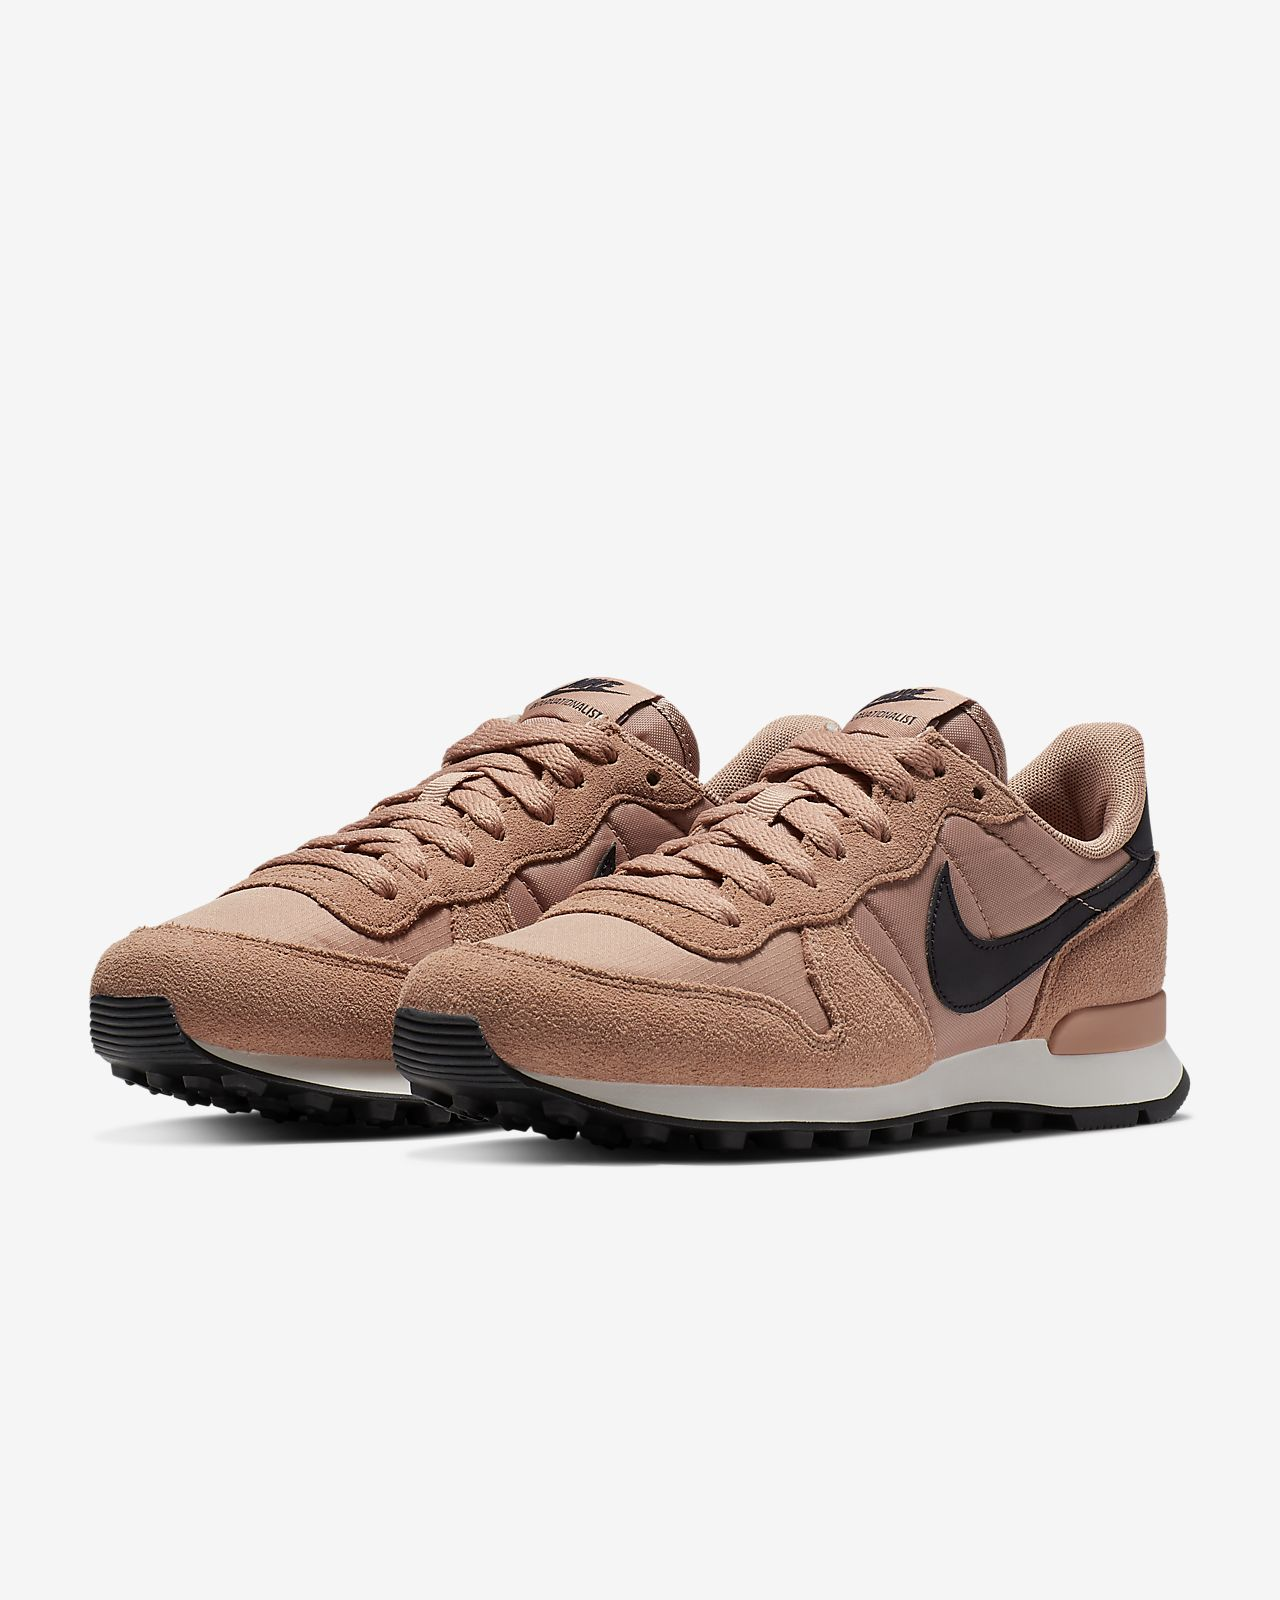 best website 4324b 6804d Low Resolution Nike Internationalist Women s Shoe Nike Internationalist  Women s Shoe